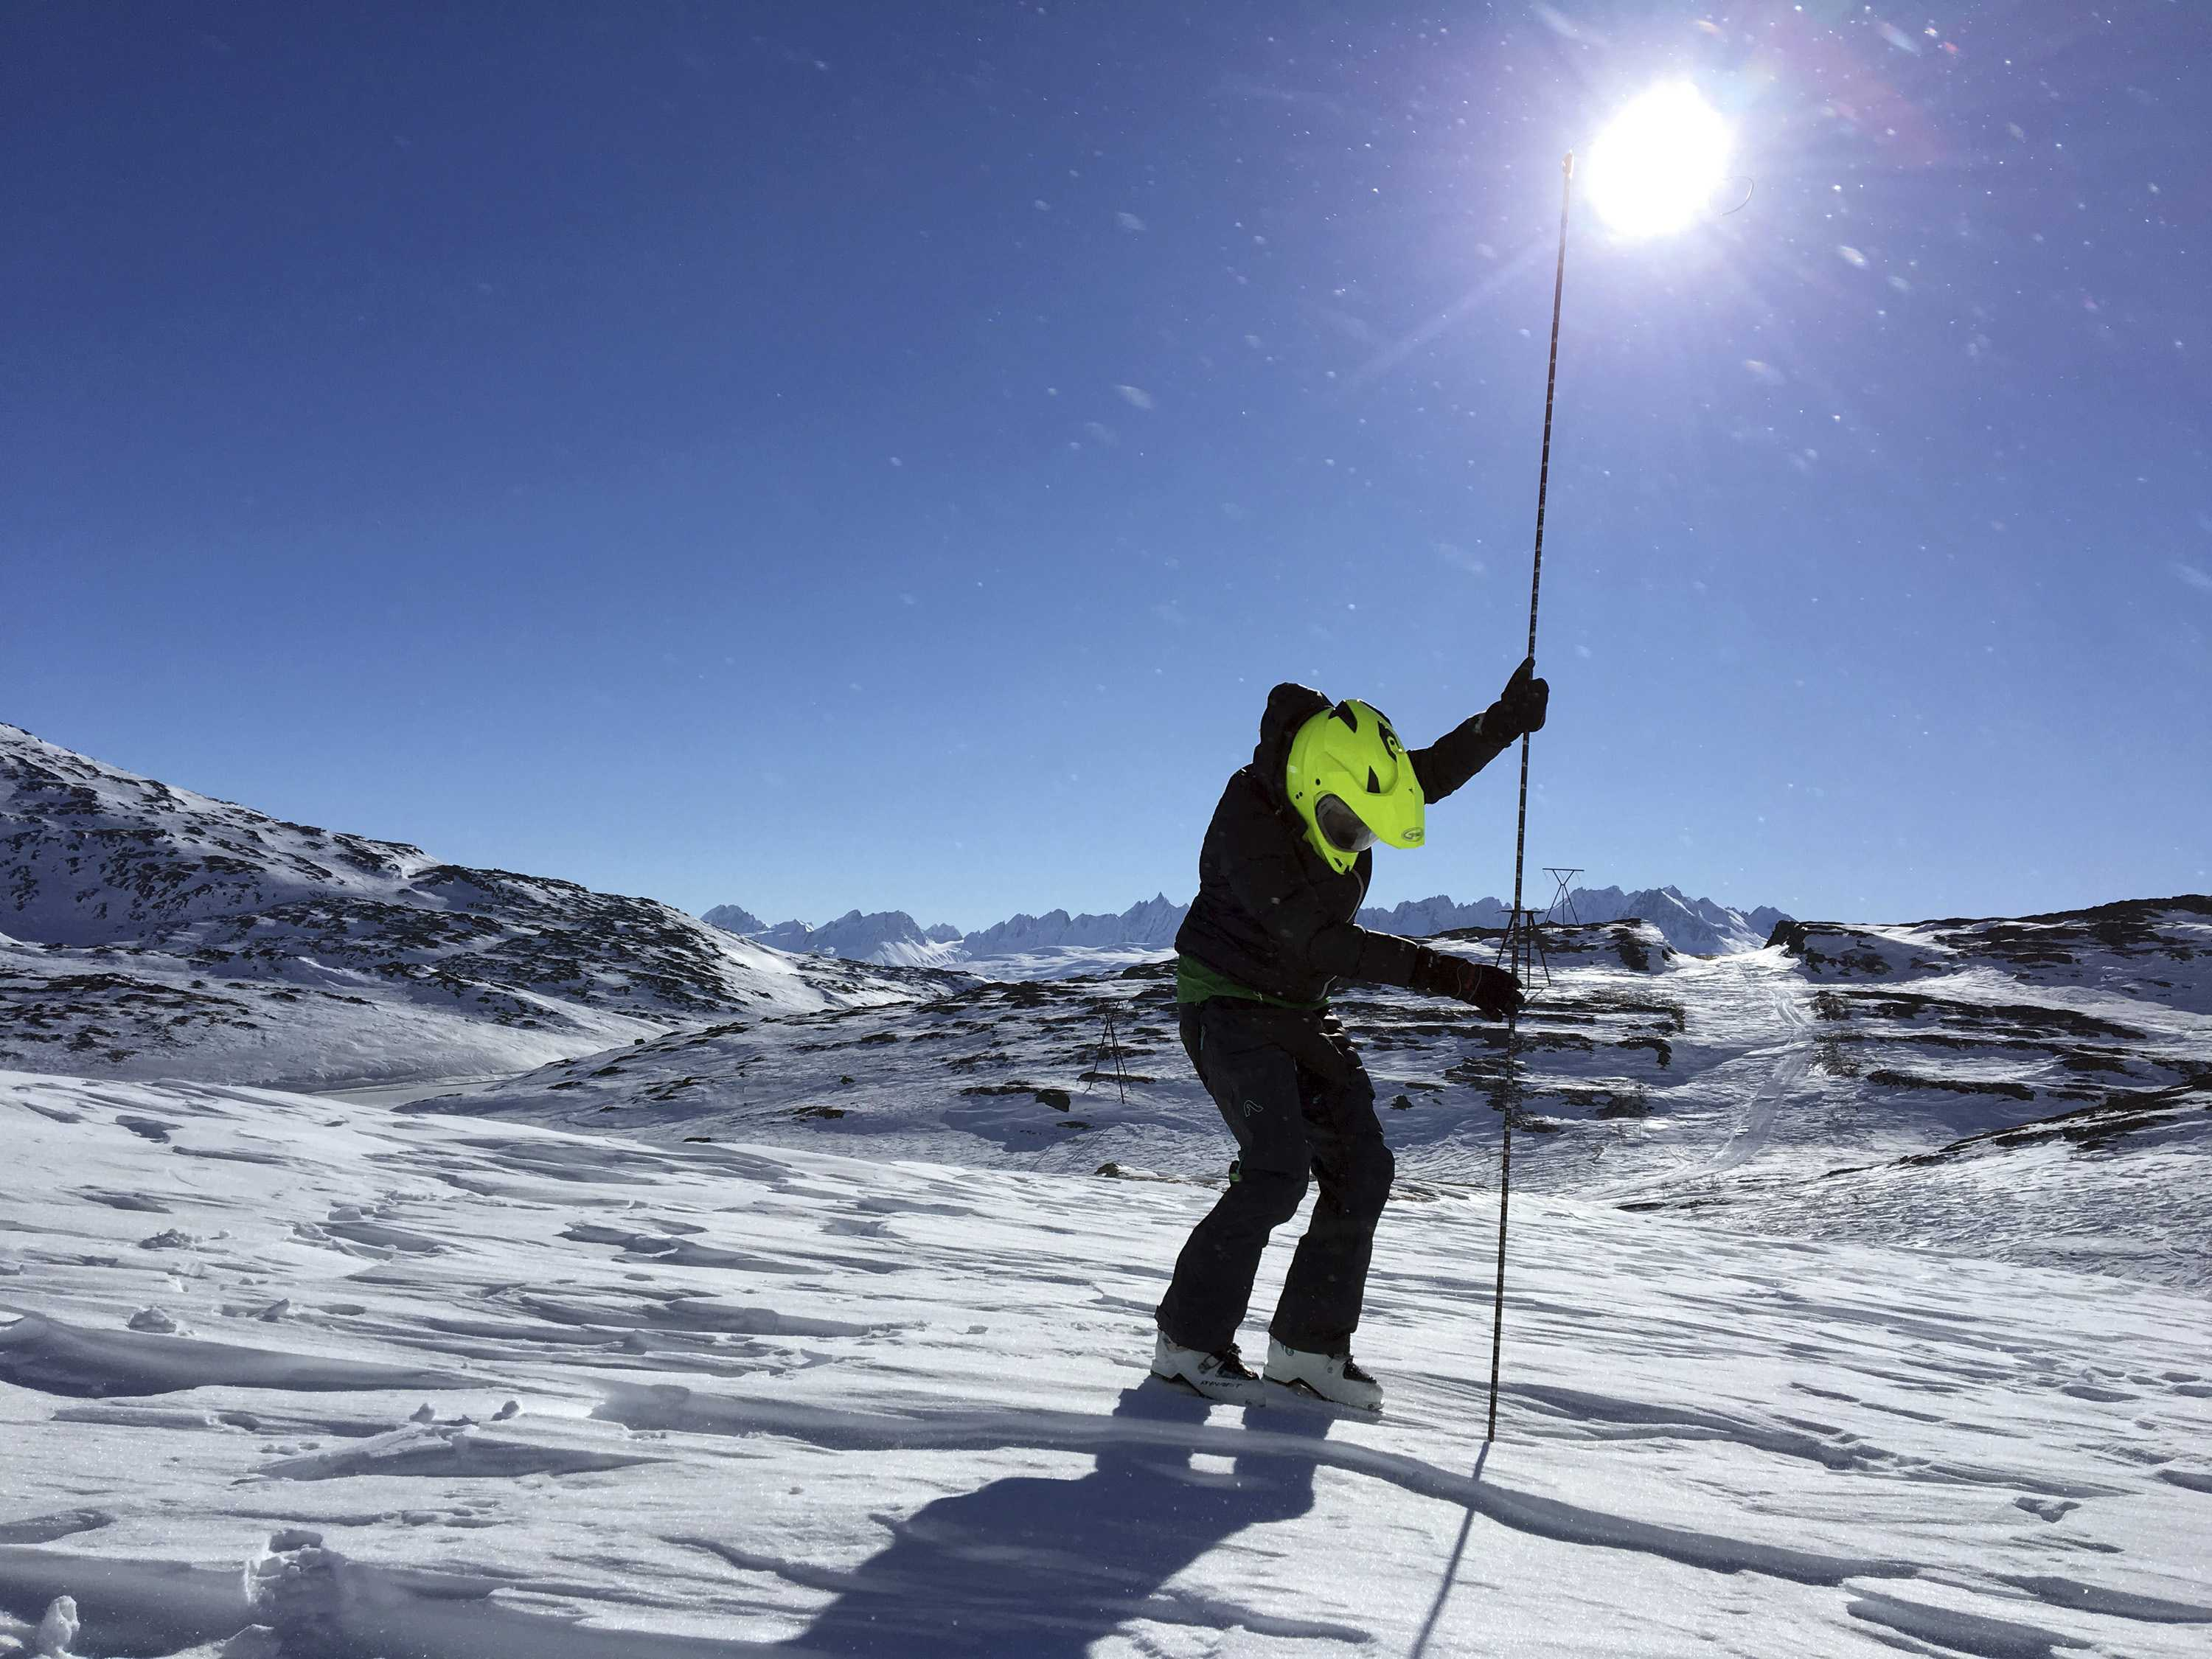 Attention Backcountry Skiers: Scientists Want Your Help